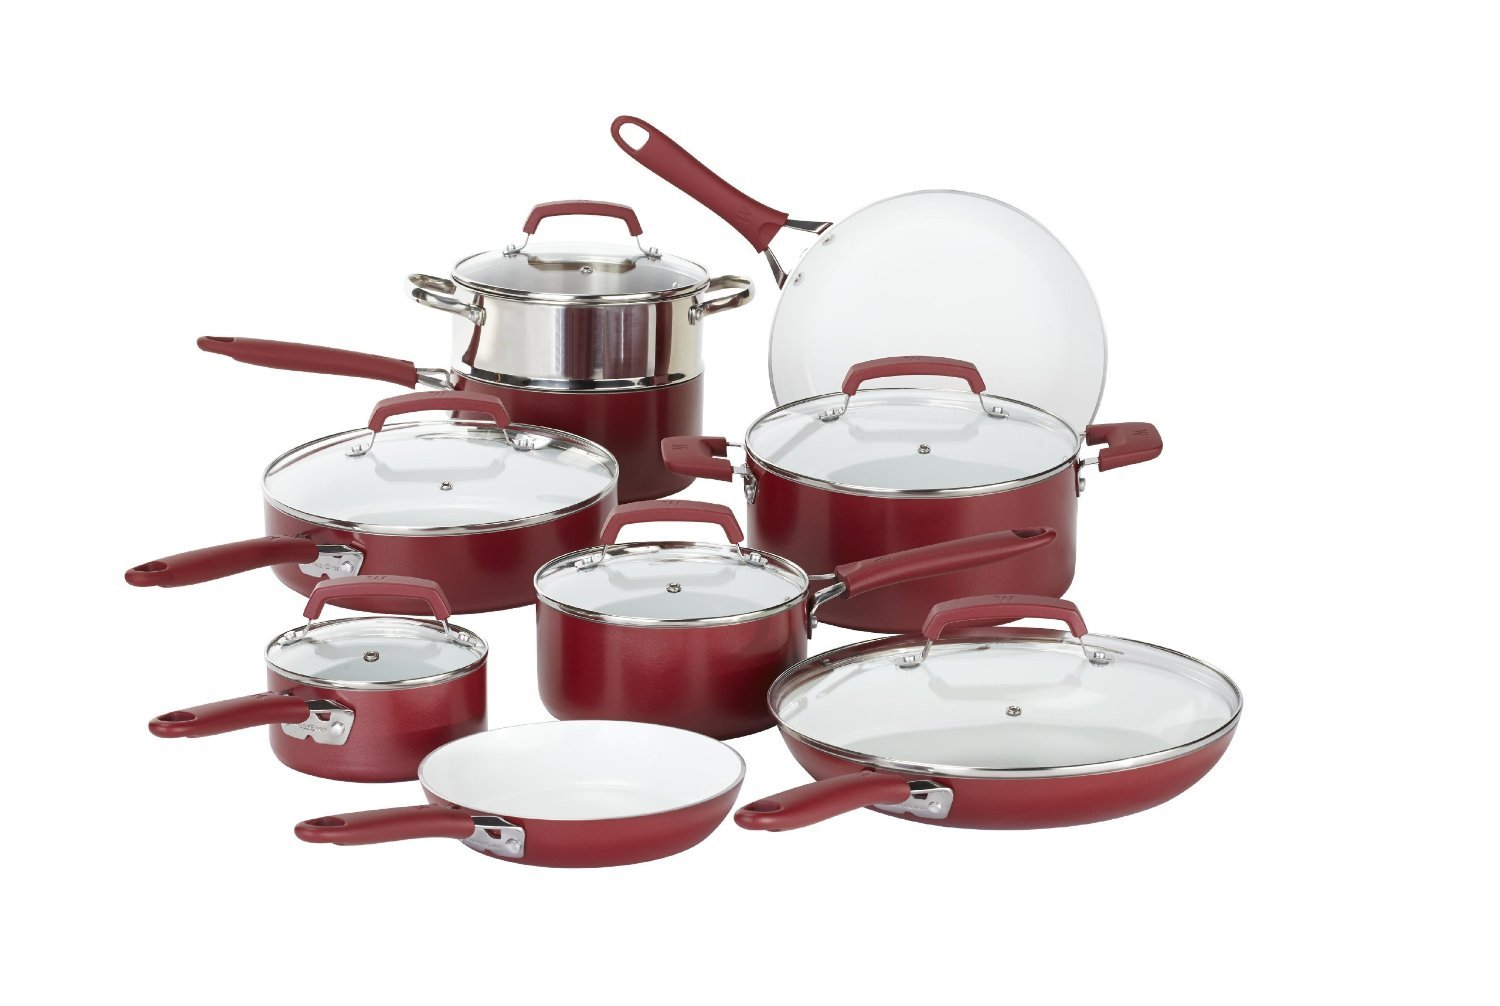 Top 10 Best Ceramic Cookware (2020 Reviews & Buying Guide) 3